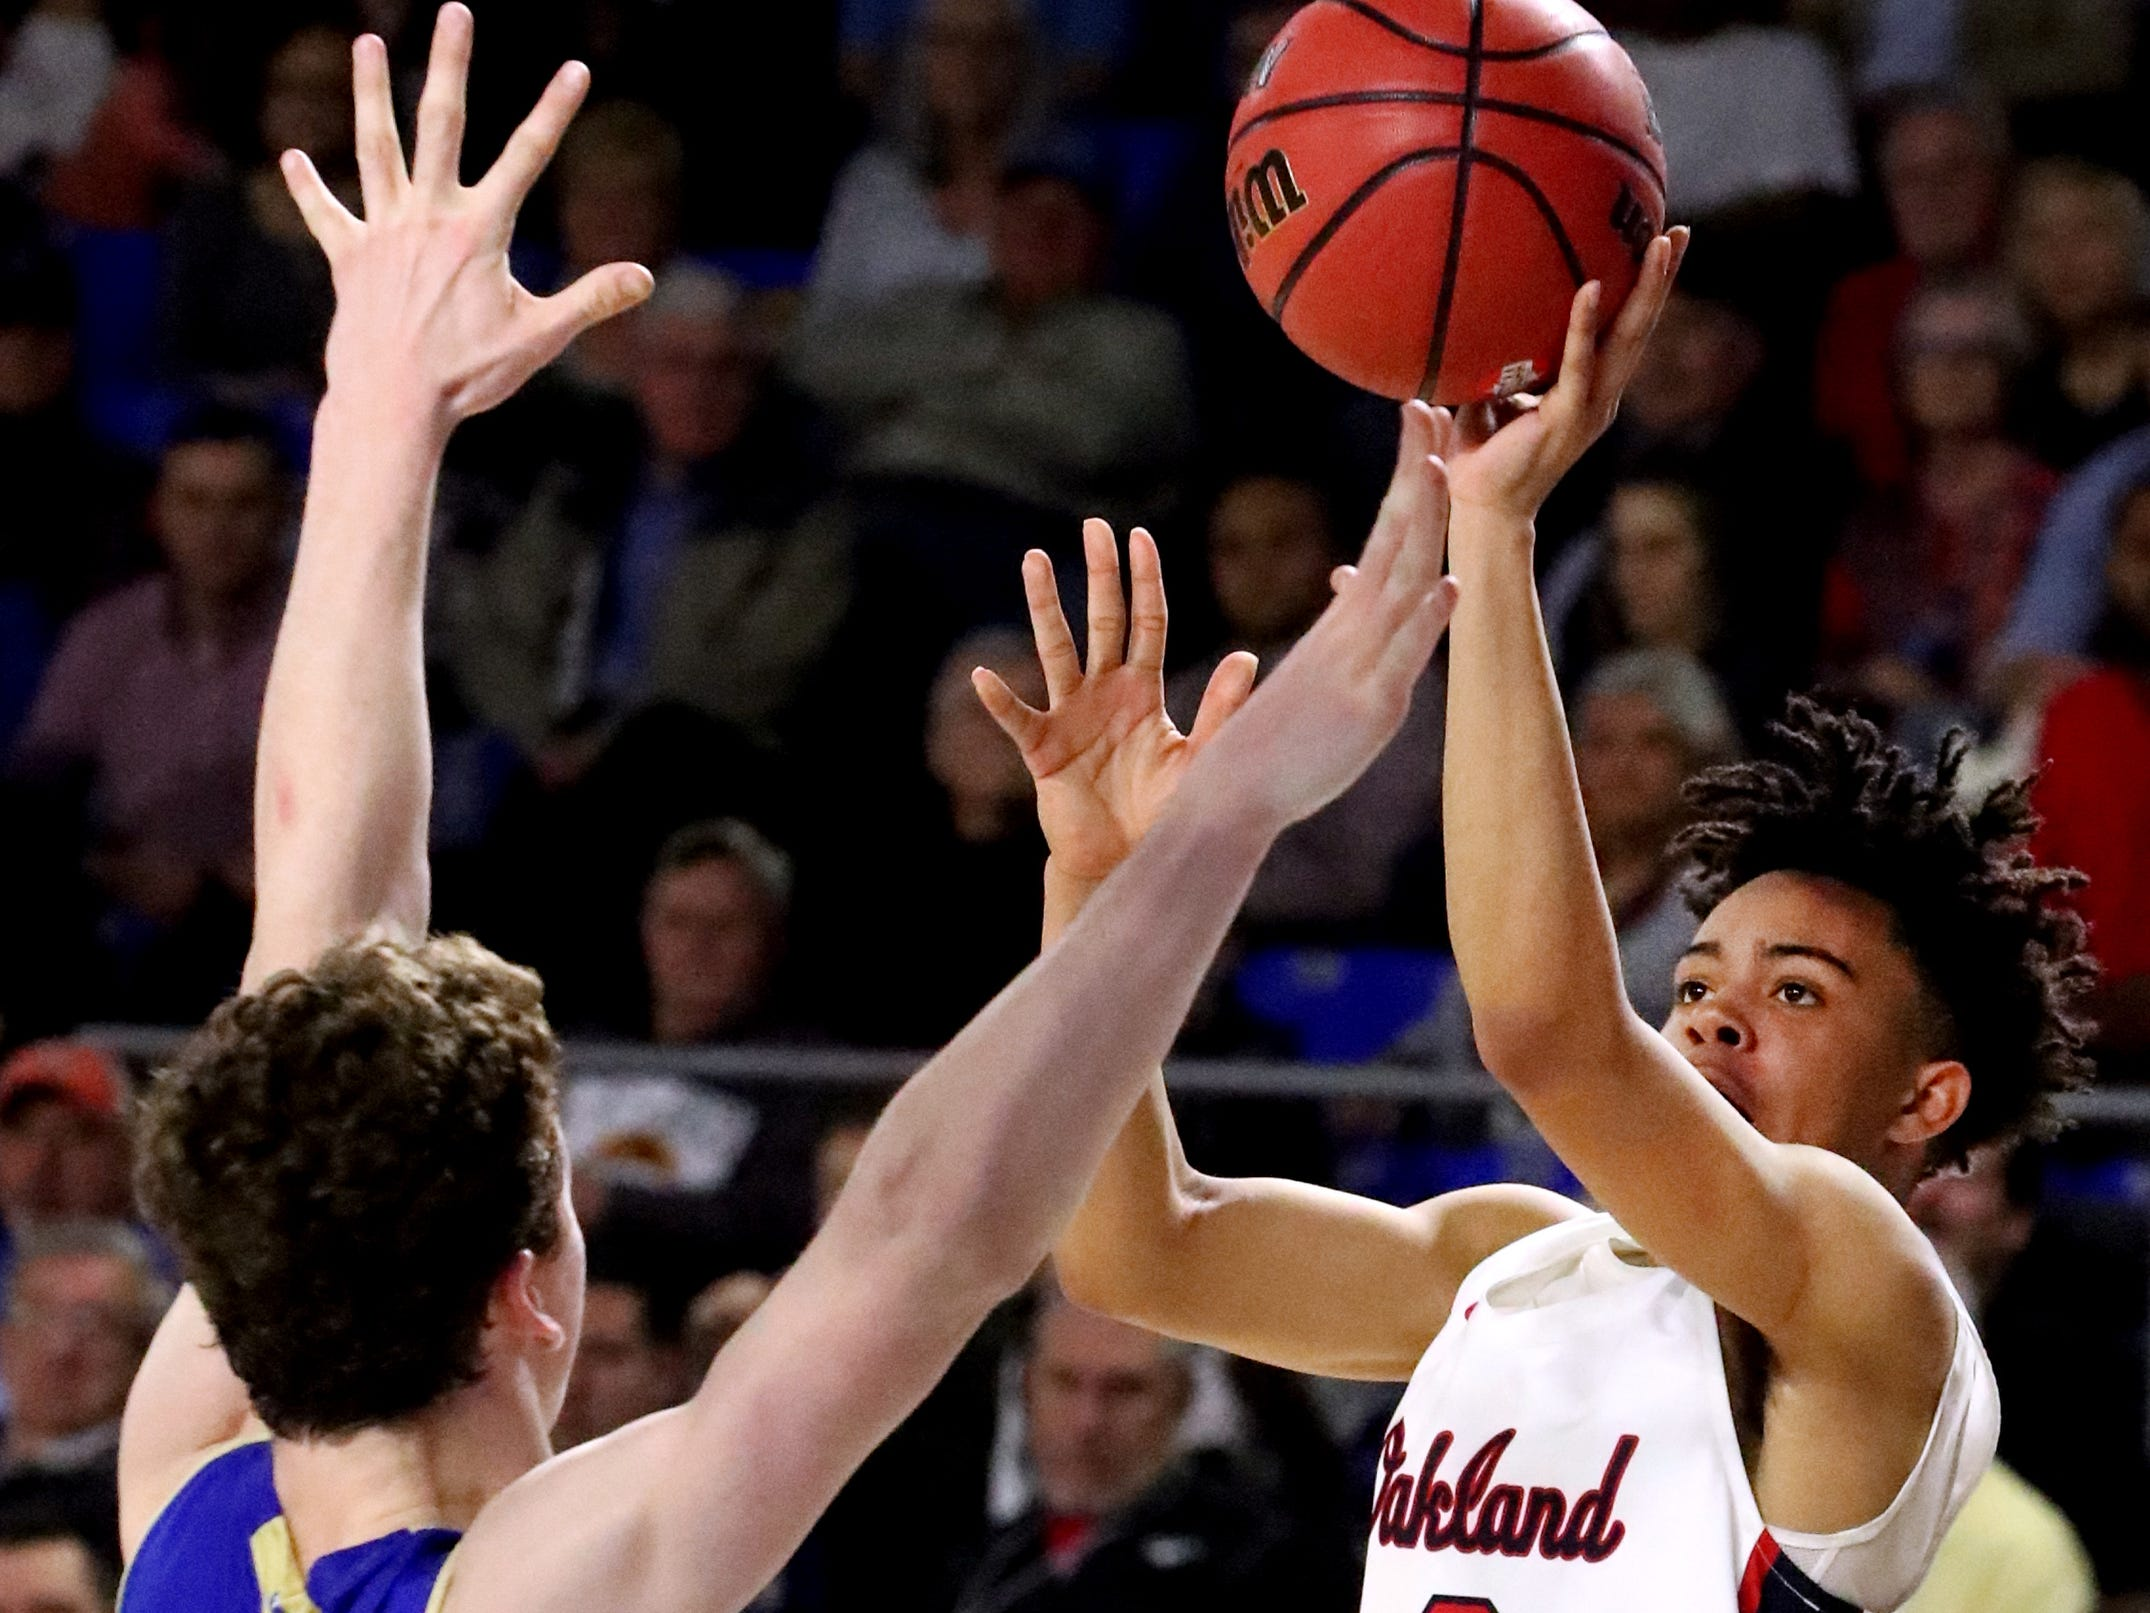 Oakland's Lonnie Tyler (2) shoots the ball as Brentwood's Ben Mills (34) guards him during the quarterfinal round of the TSSAA Class AAA Boys State Tournament, on Thursday, March 14, 2019, at Murphy Center in Murfreesboro, Tenn.